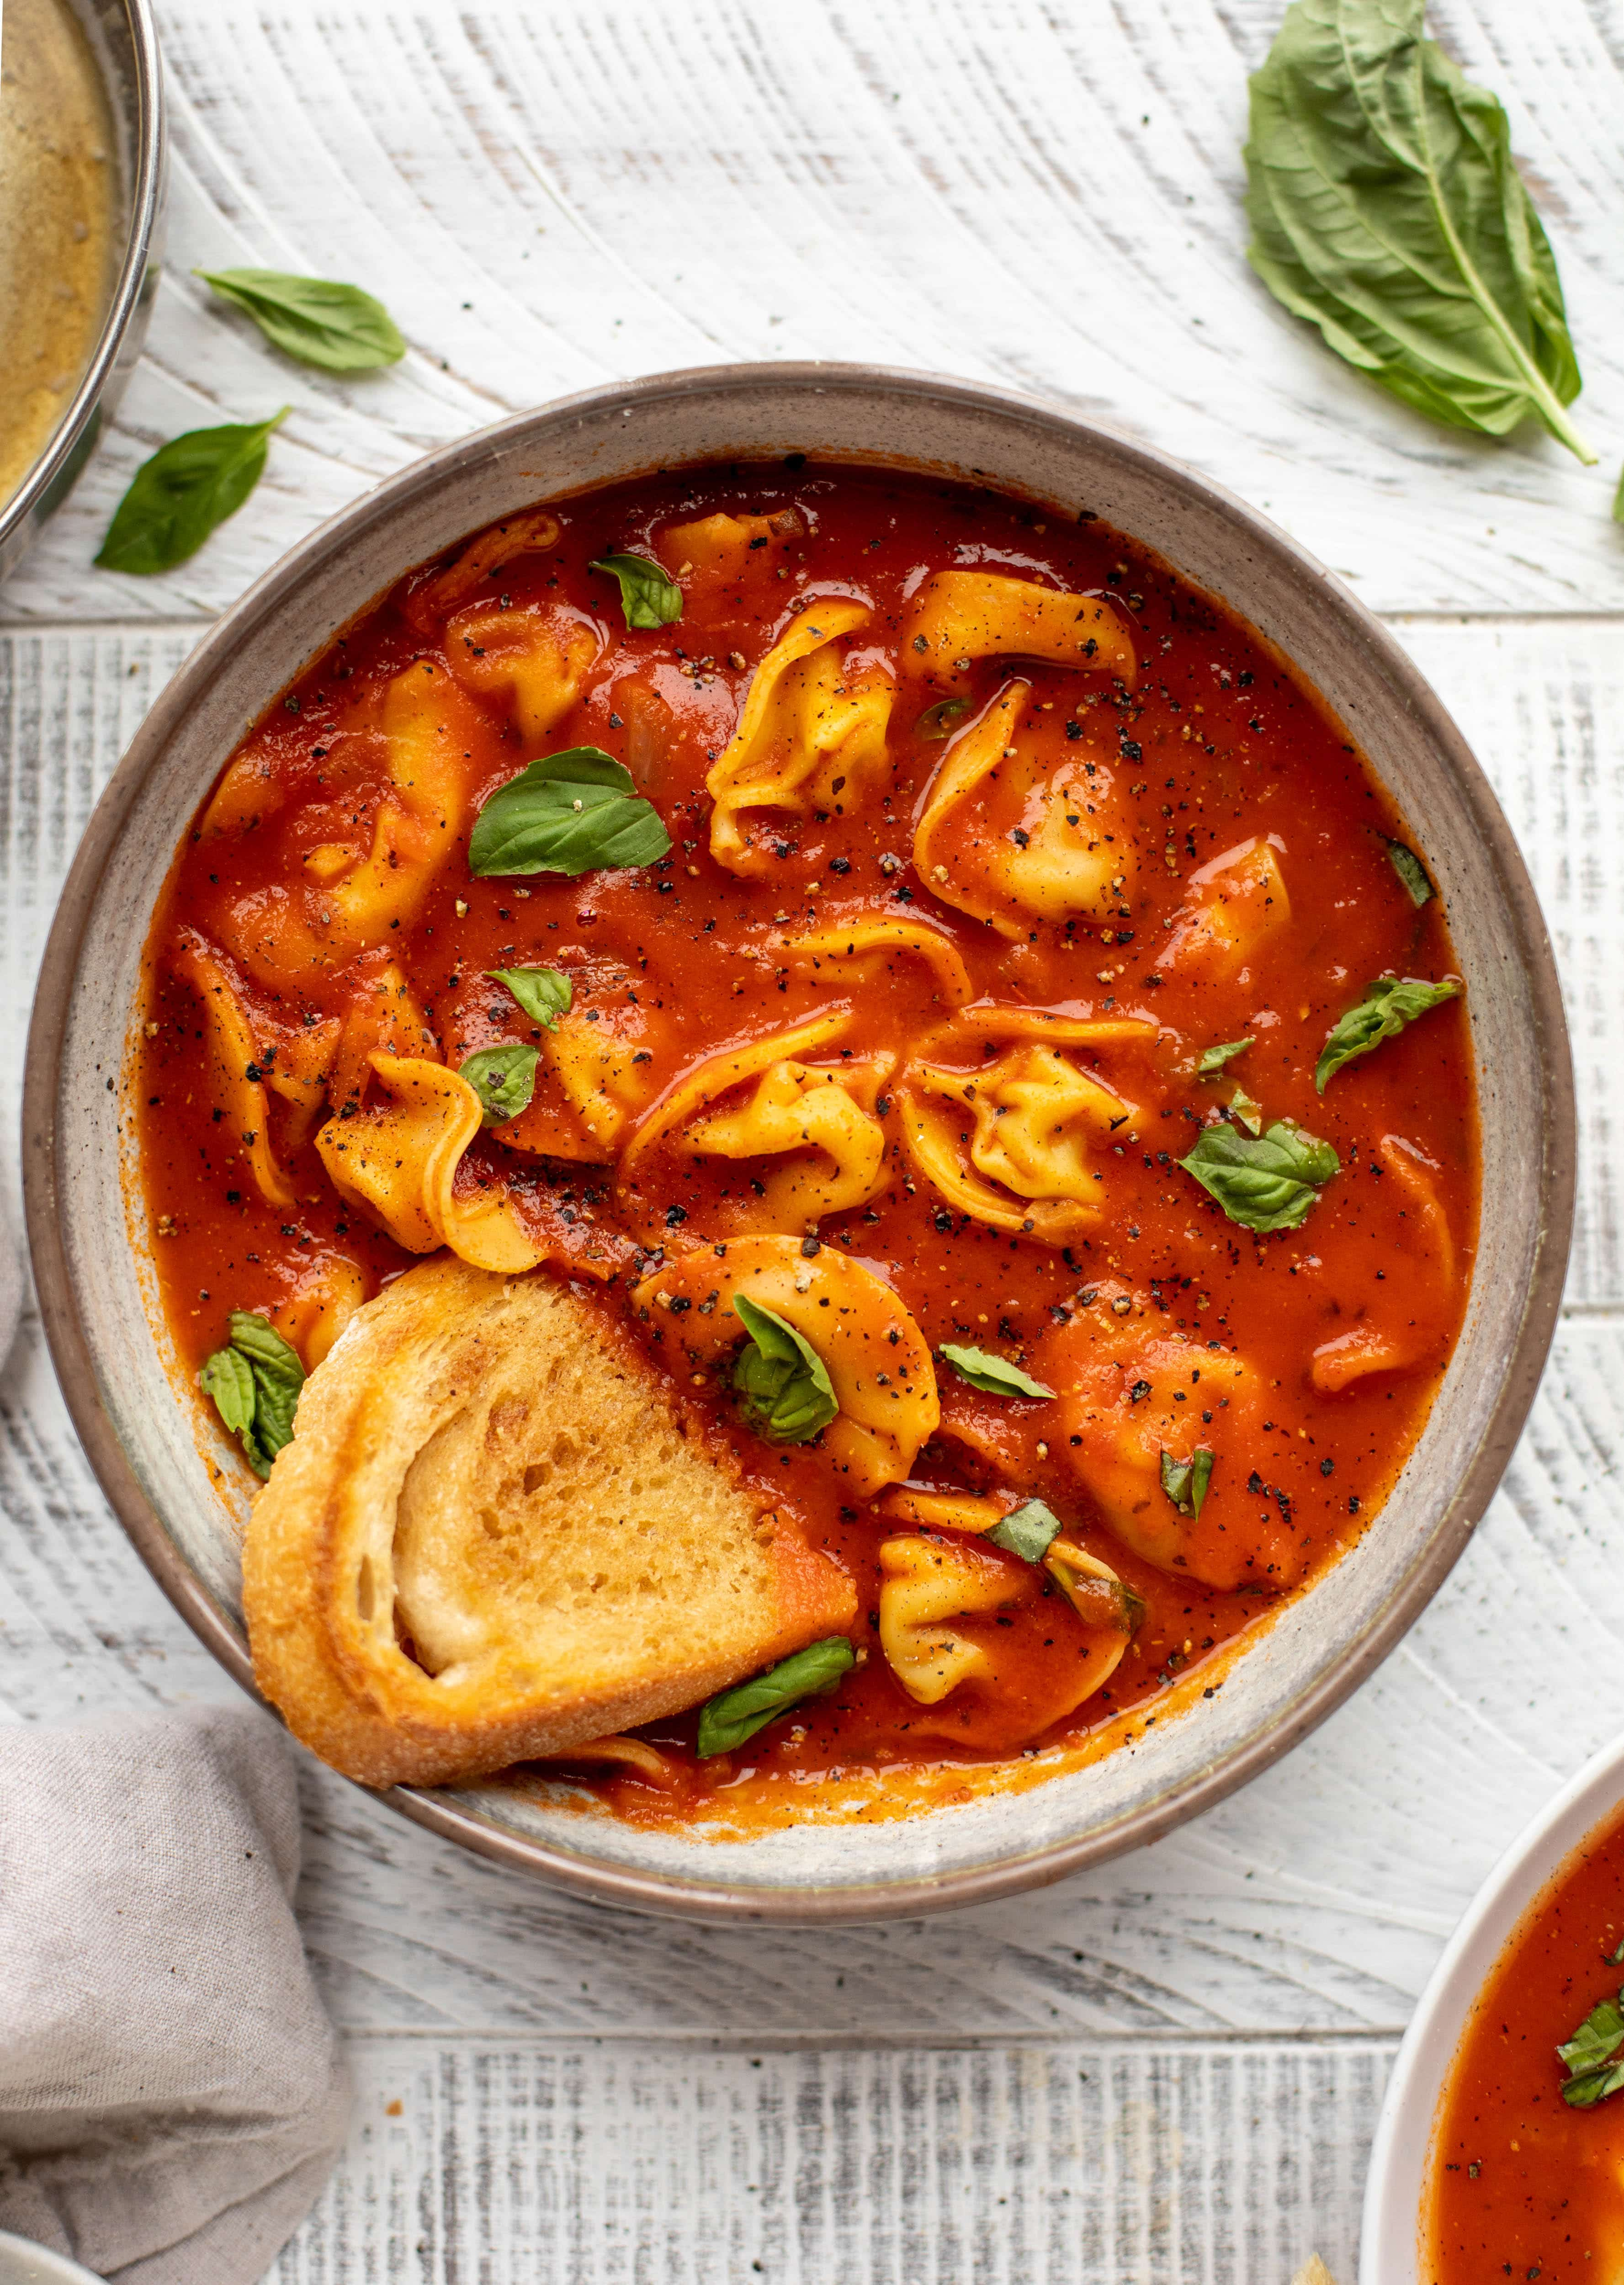 This curried tomato tortellini soup has so much flavor! Serve with cheesy tortellini and brown butter garlic toasts for the perfect weeknight meal.